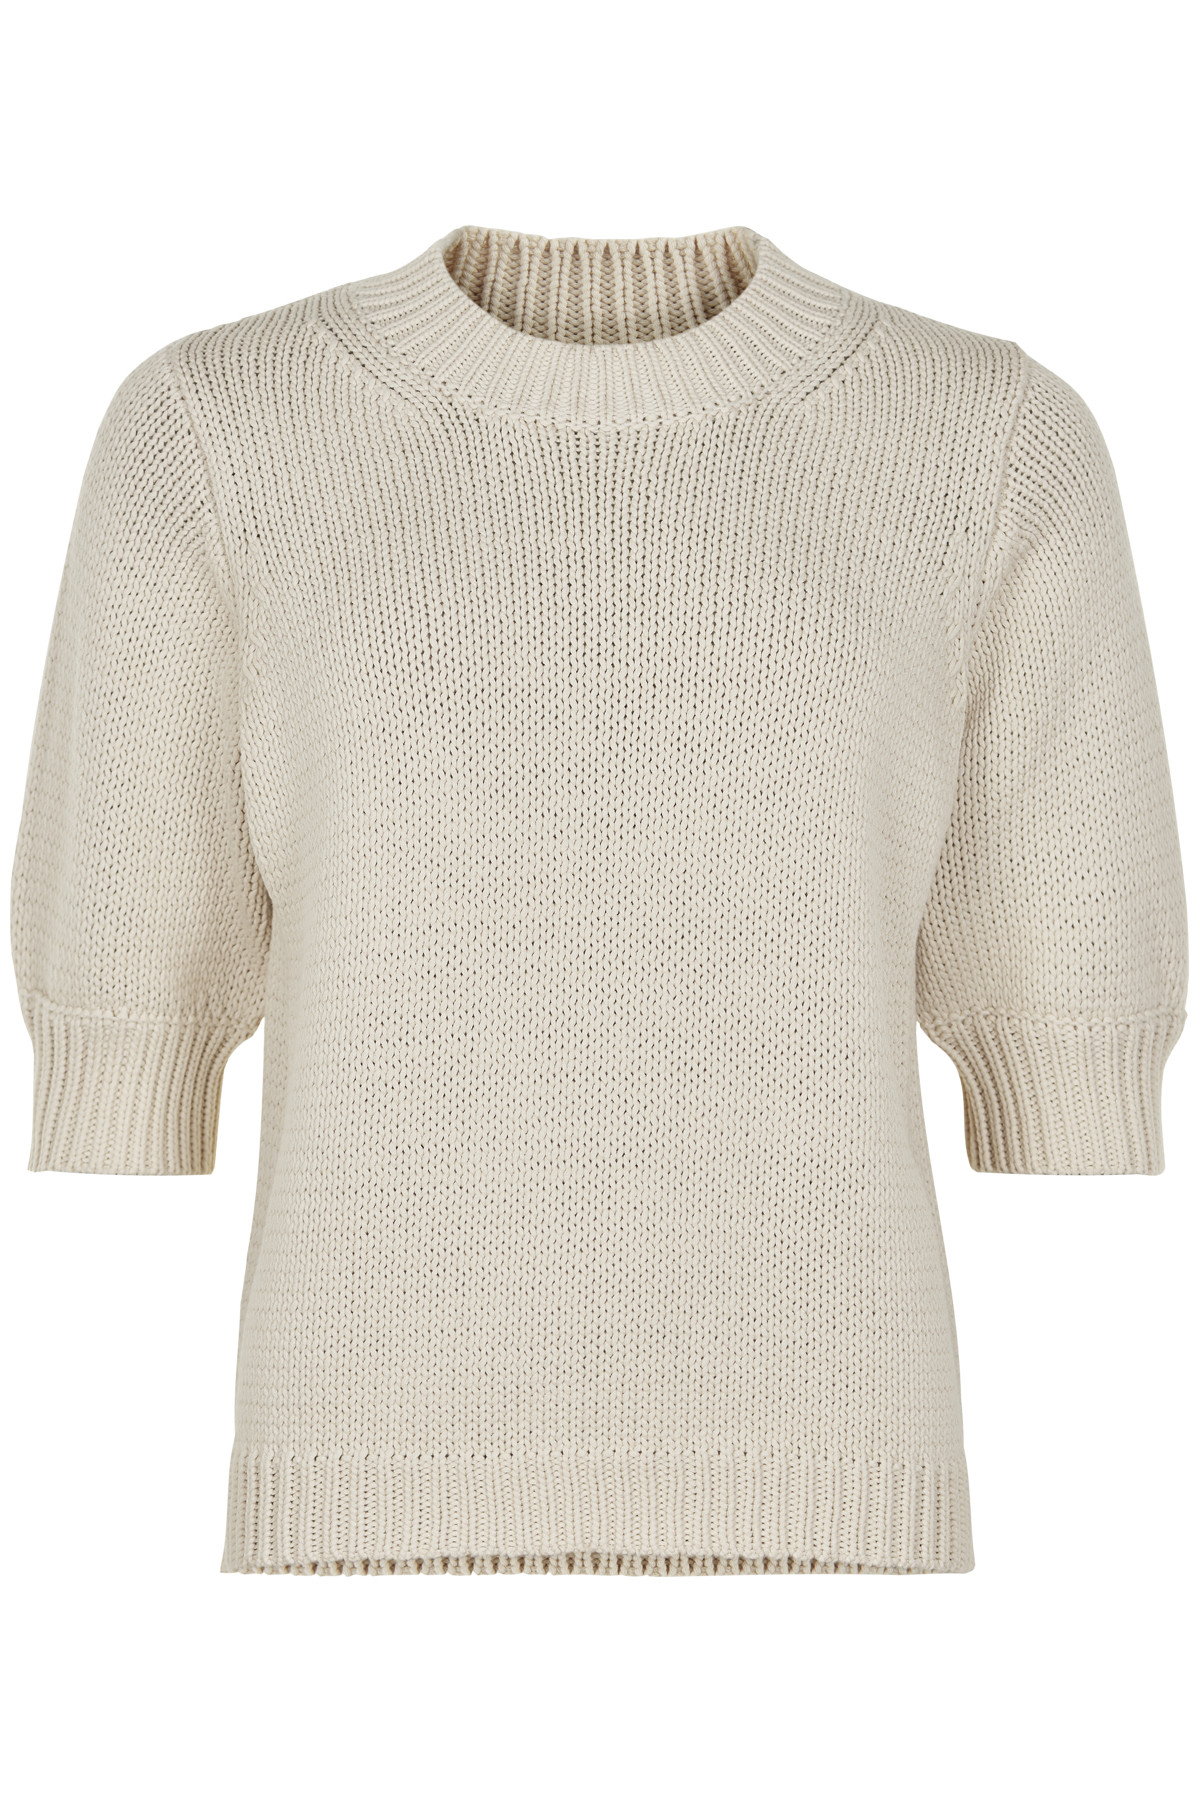 Image of   AND LESS ALBENA PULLOVER 5220205 9504 (Birch, L)